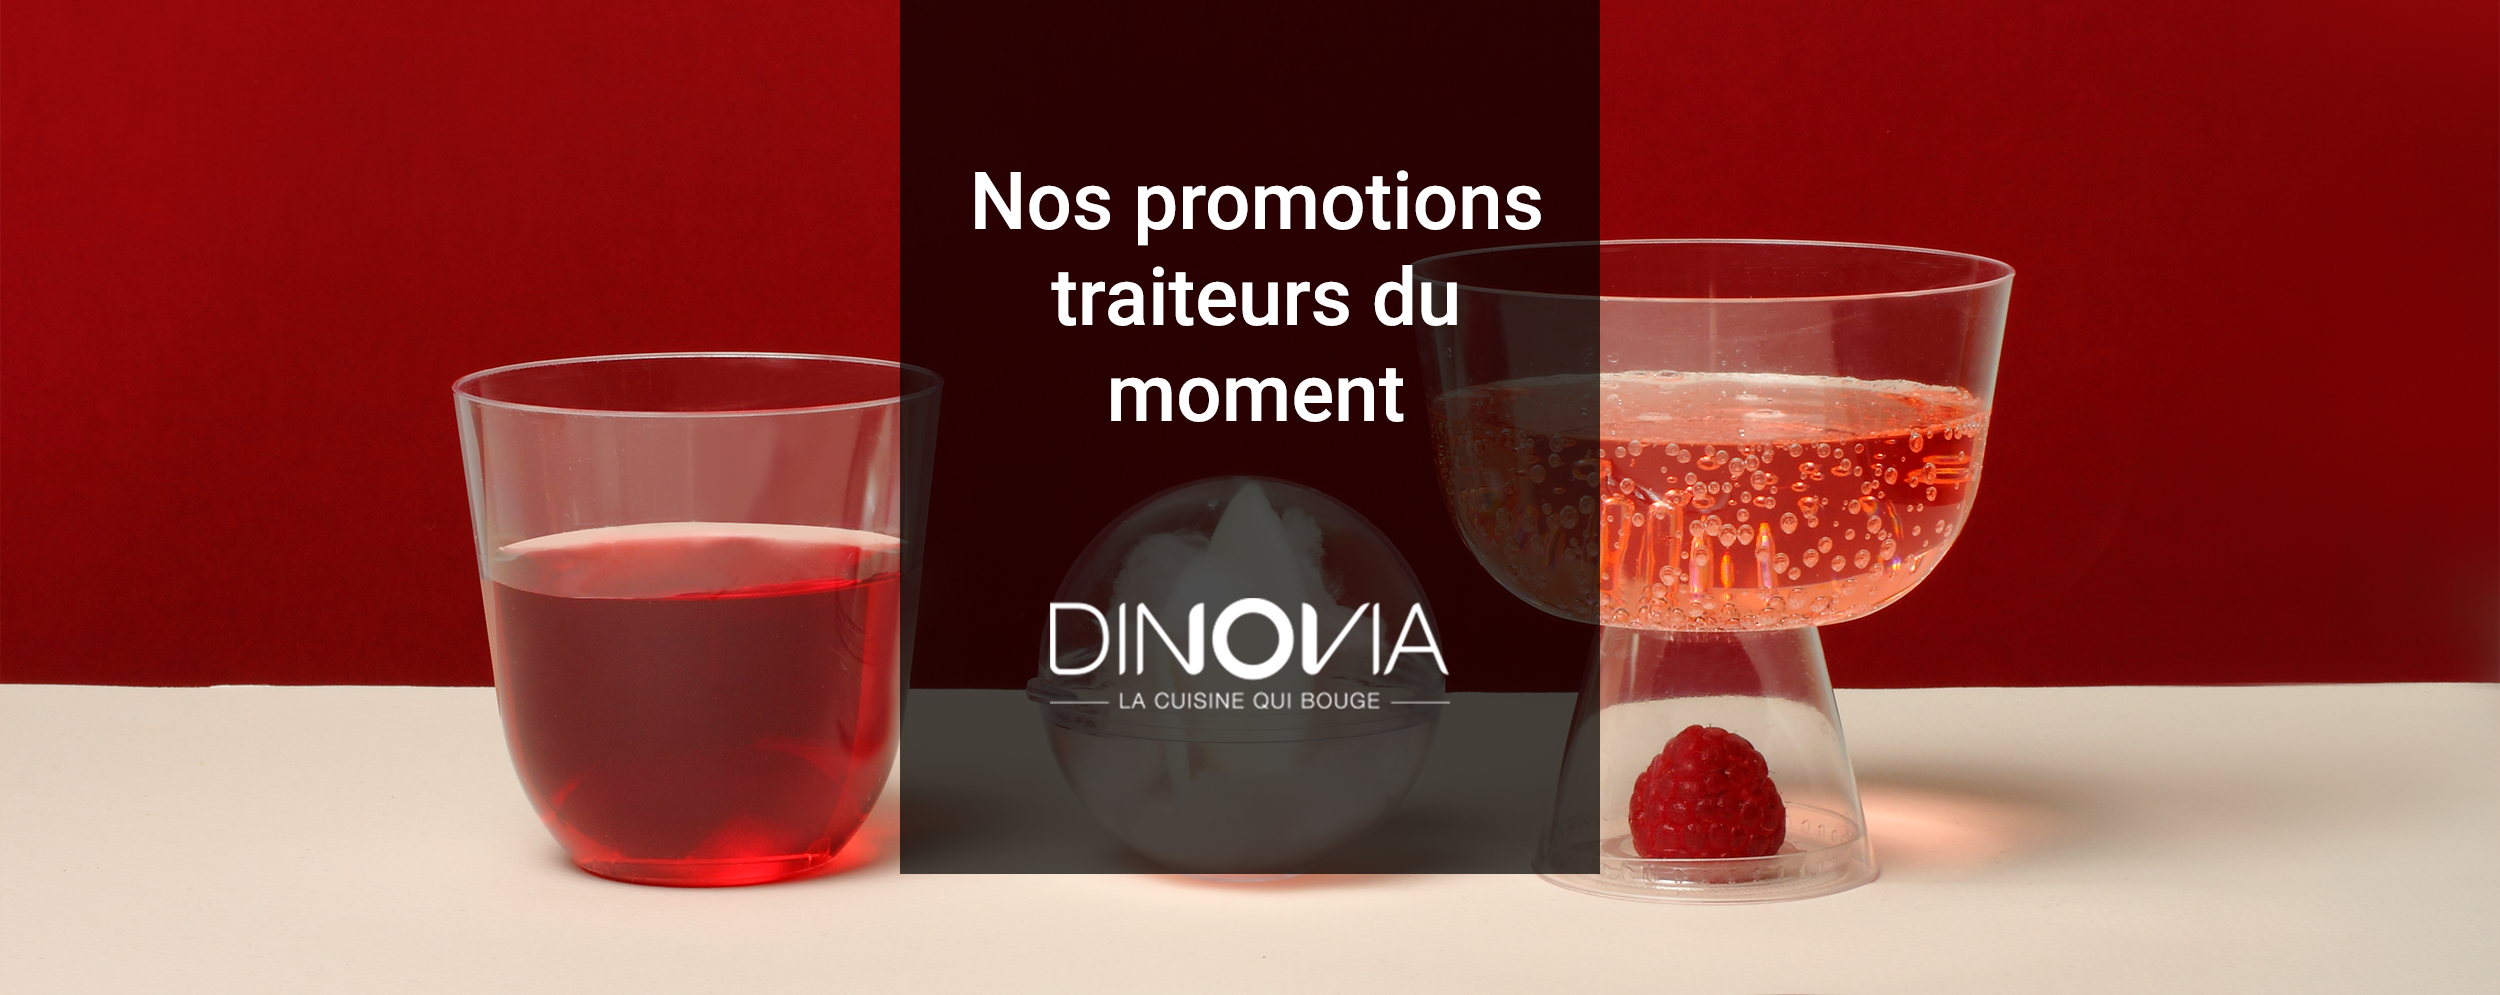 Nos promotions traiteur